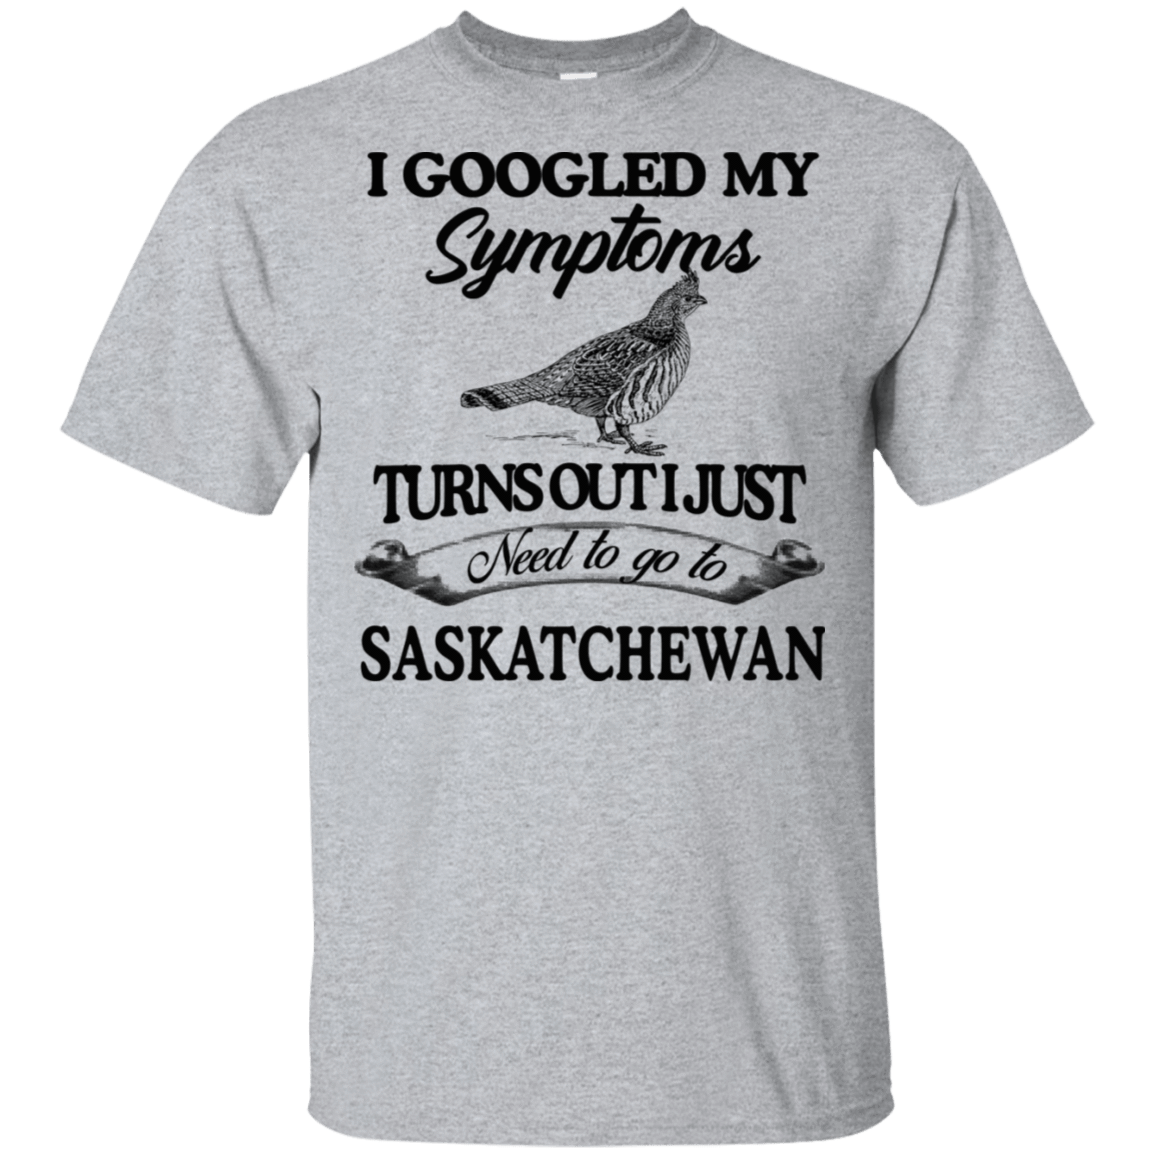 I Googled My Symptoms Turns Out I Just Need To Go To Saskatchewan 22-115-71994783-254 - Tee Ript